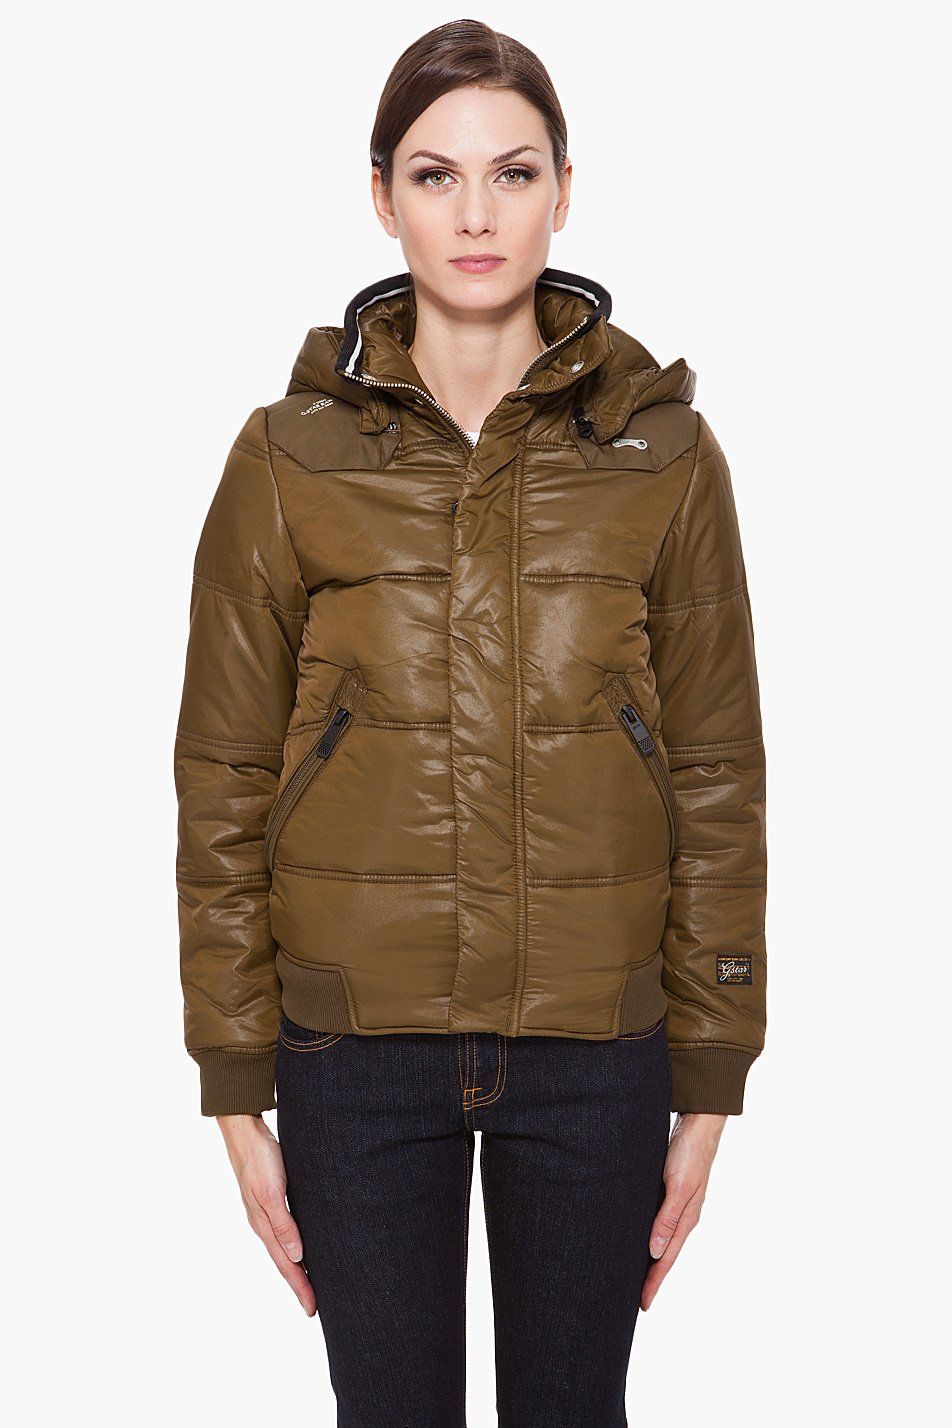 g star raw nordic whistler bomber jacket in green olive lyst. Black Bedroom Furniture Sets. Home Design Ideas